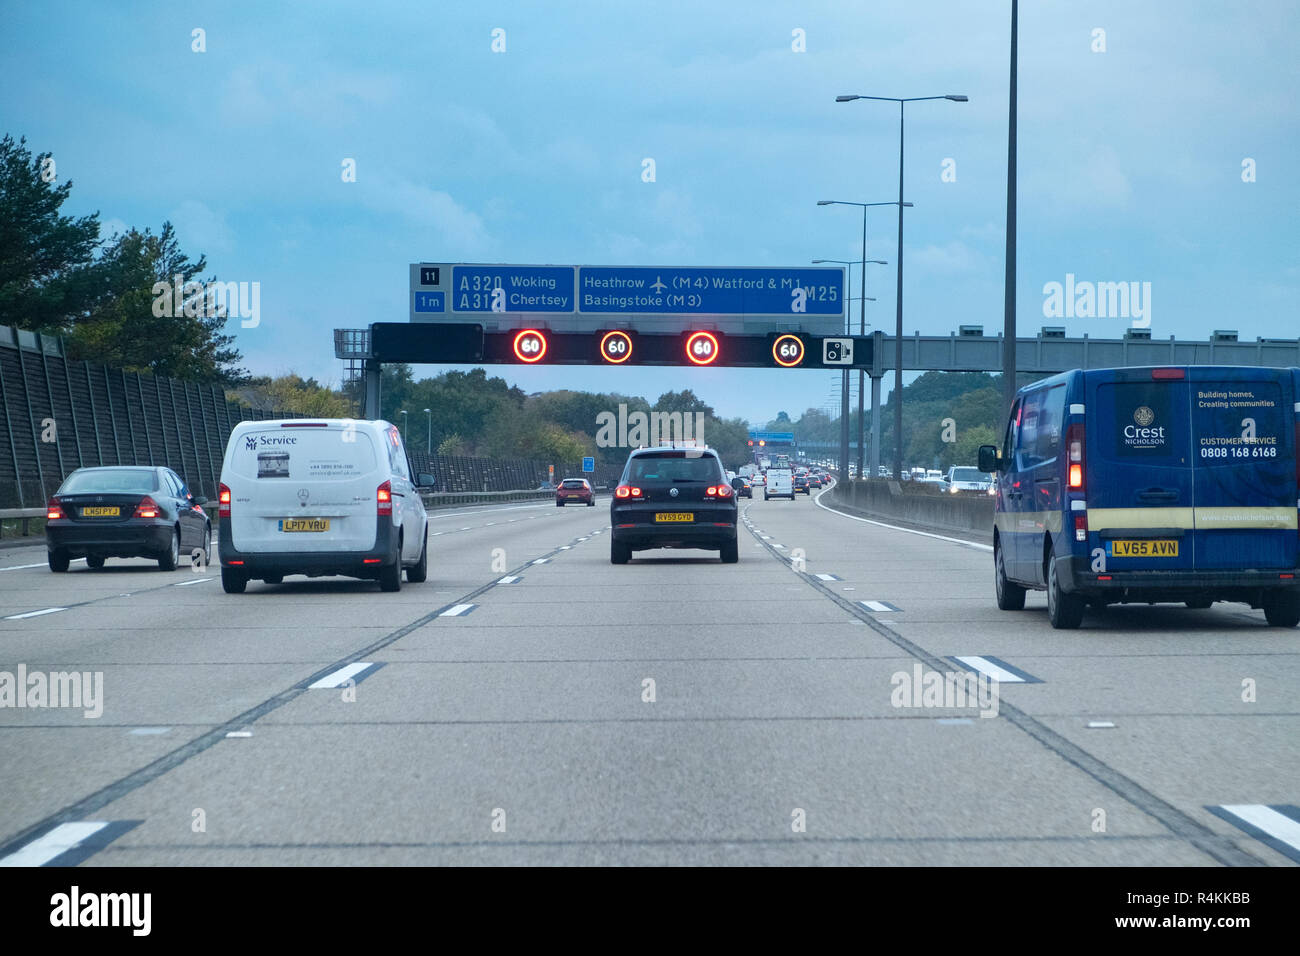 M25 motorway with 60mph speed limit signs illuminated - Stock Image